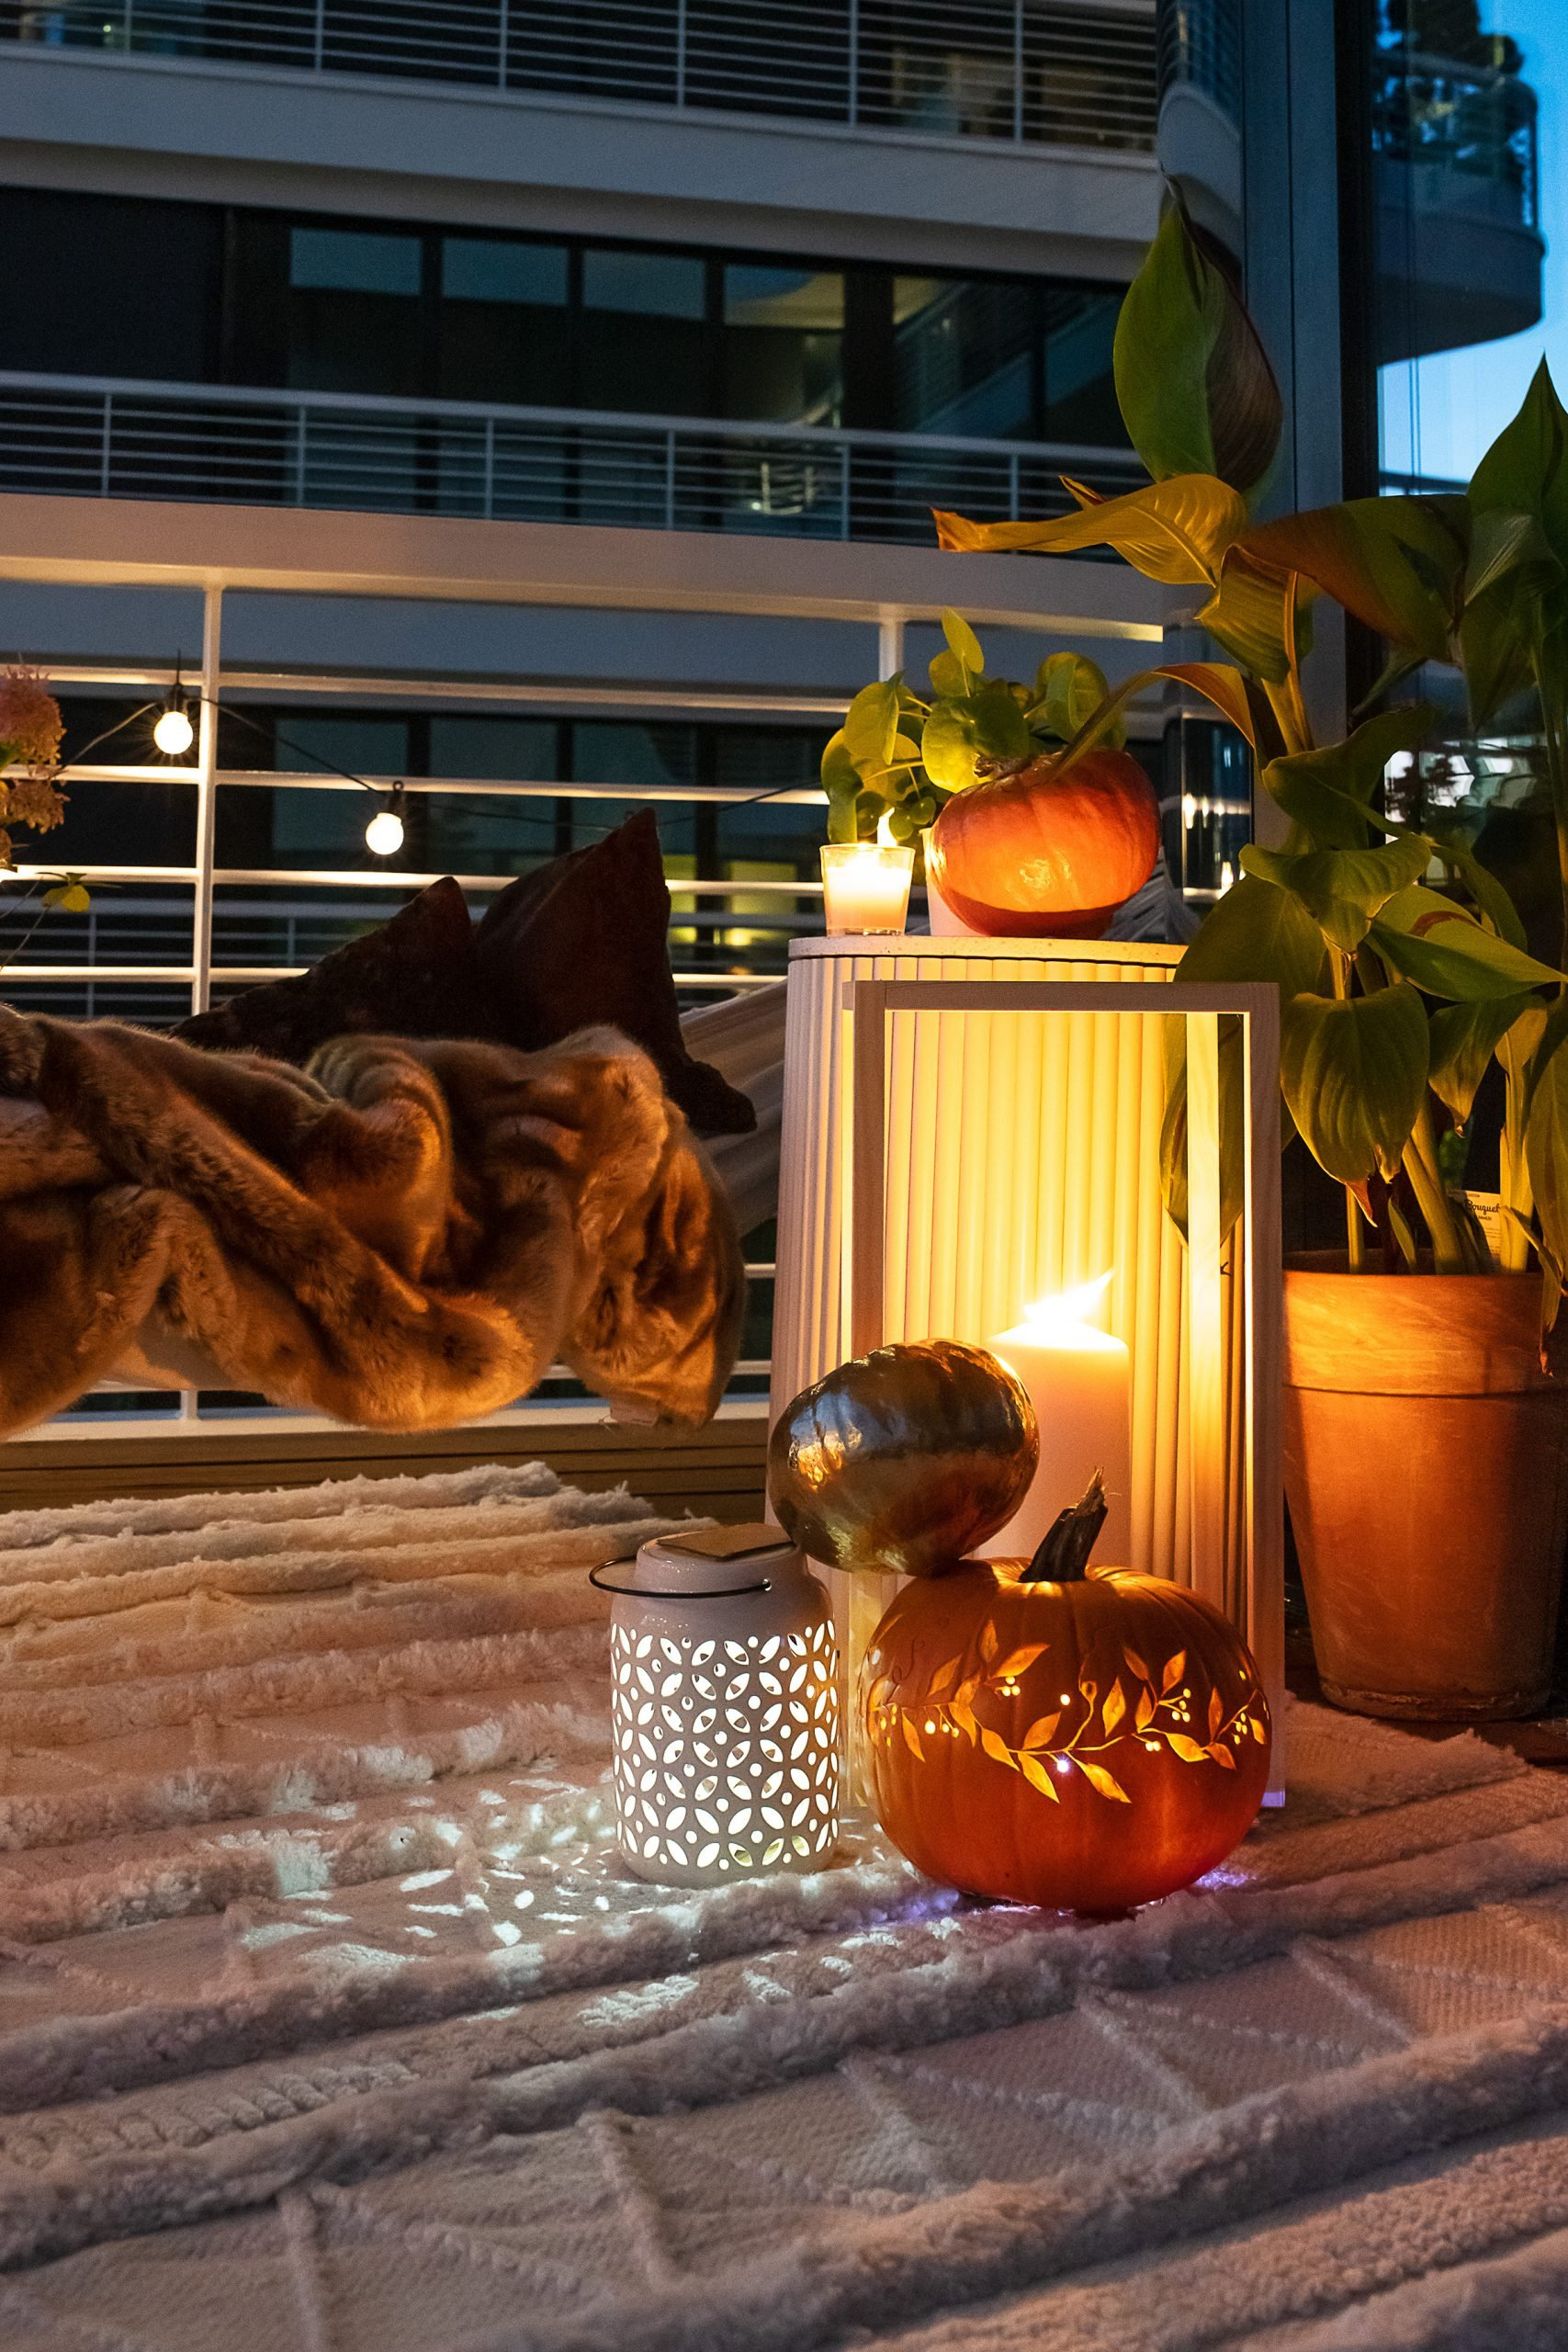 Autumn Balcony with Lantern and Pumpkins